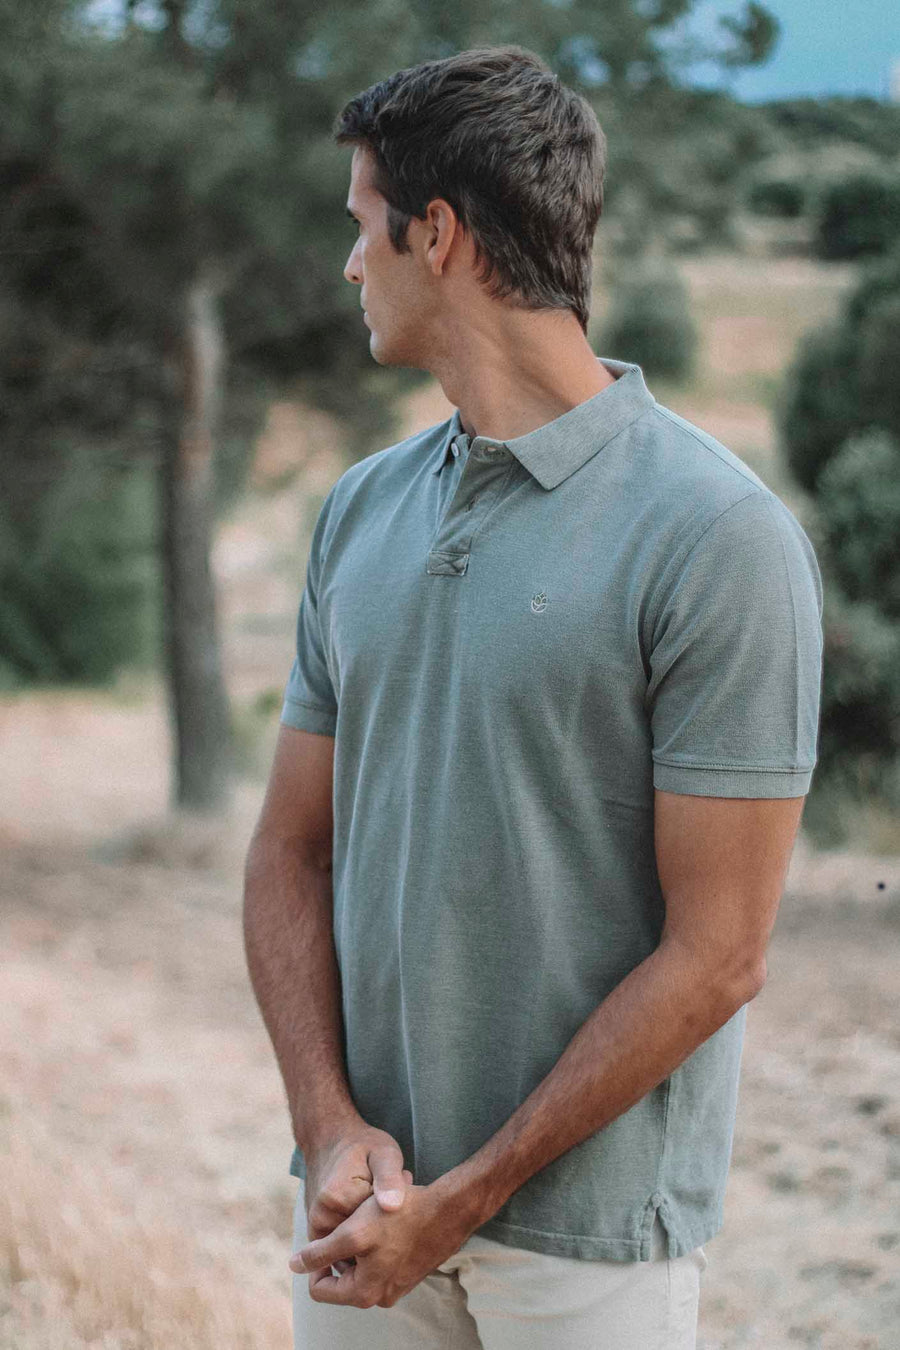 Distressed Dry Olive Green Polo